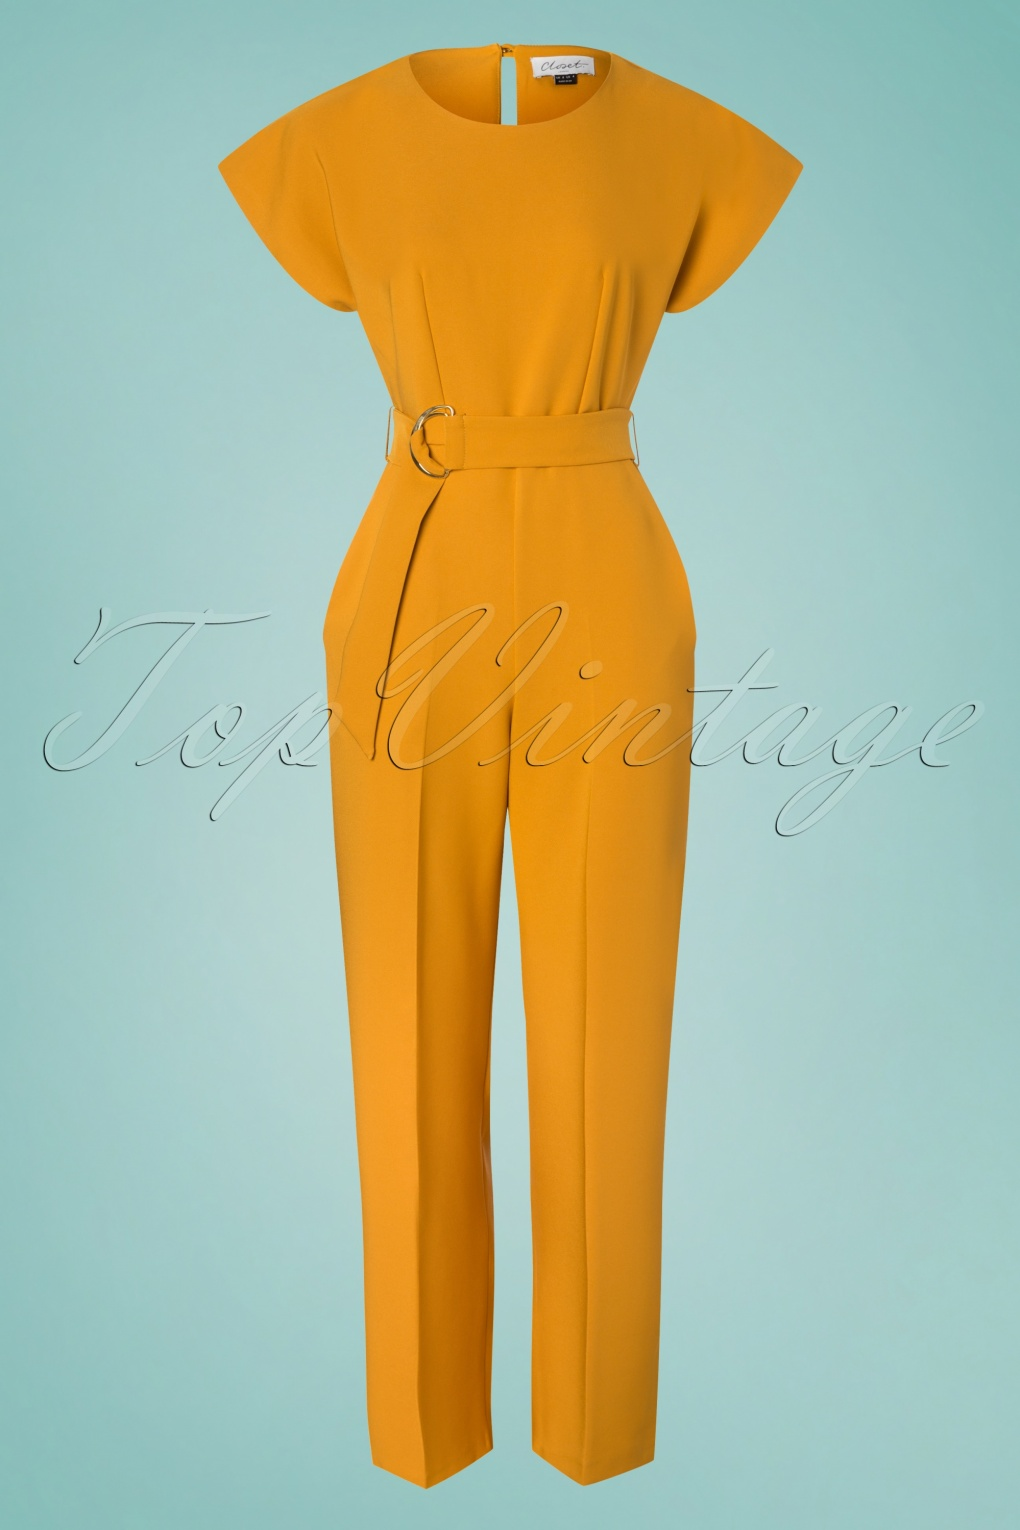 Vintage High Waisted Trousers, Sailor Pants, Jeans 70s Kiki Kimono Jumpsuit in Mustard £82.81 AT vintagedancer.com